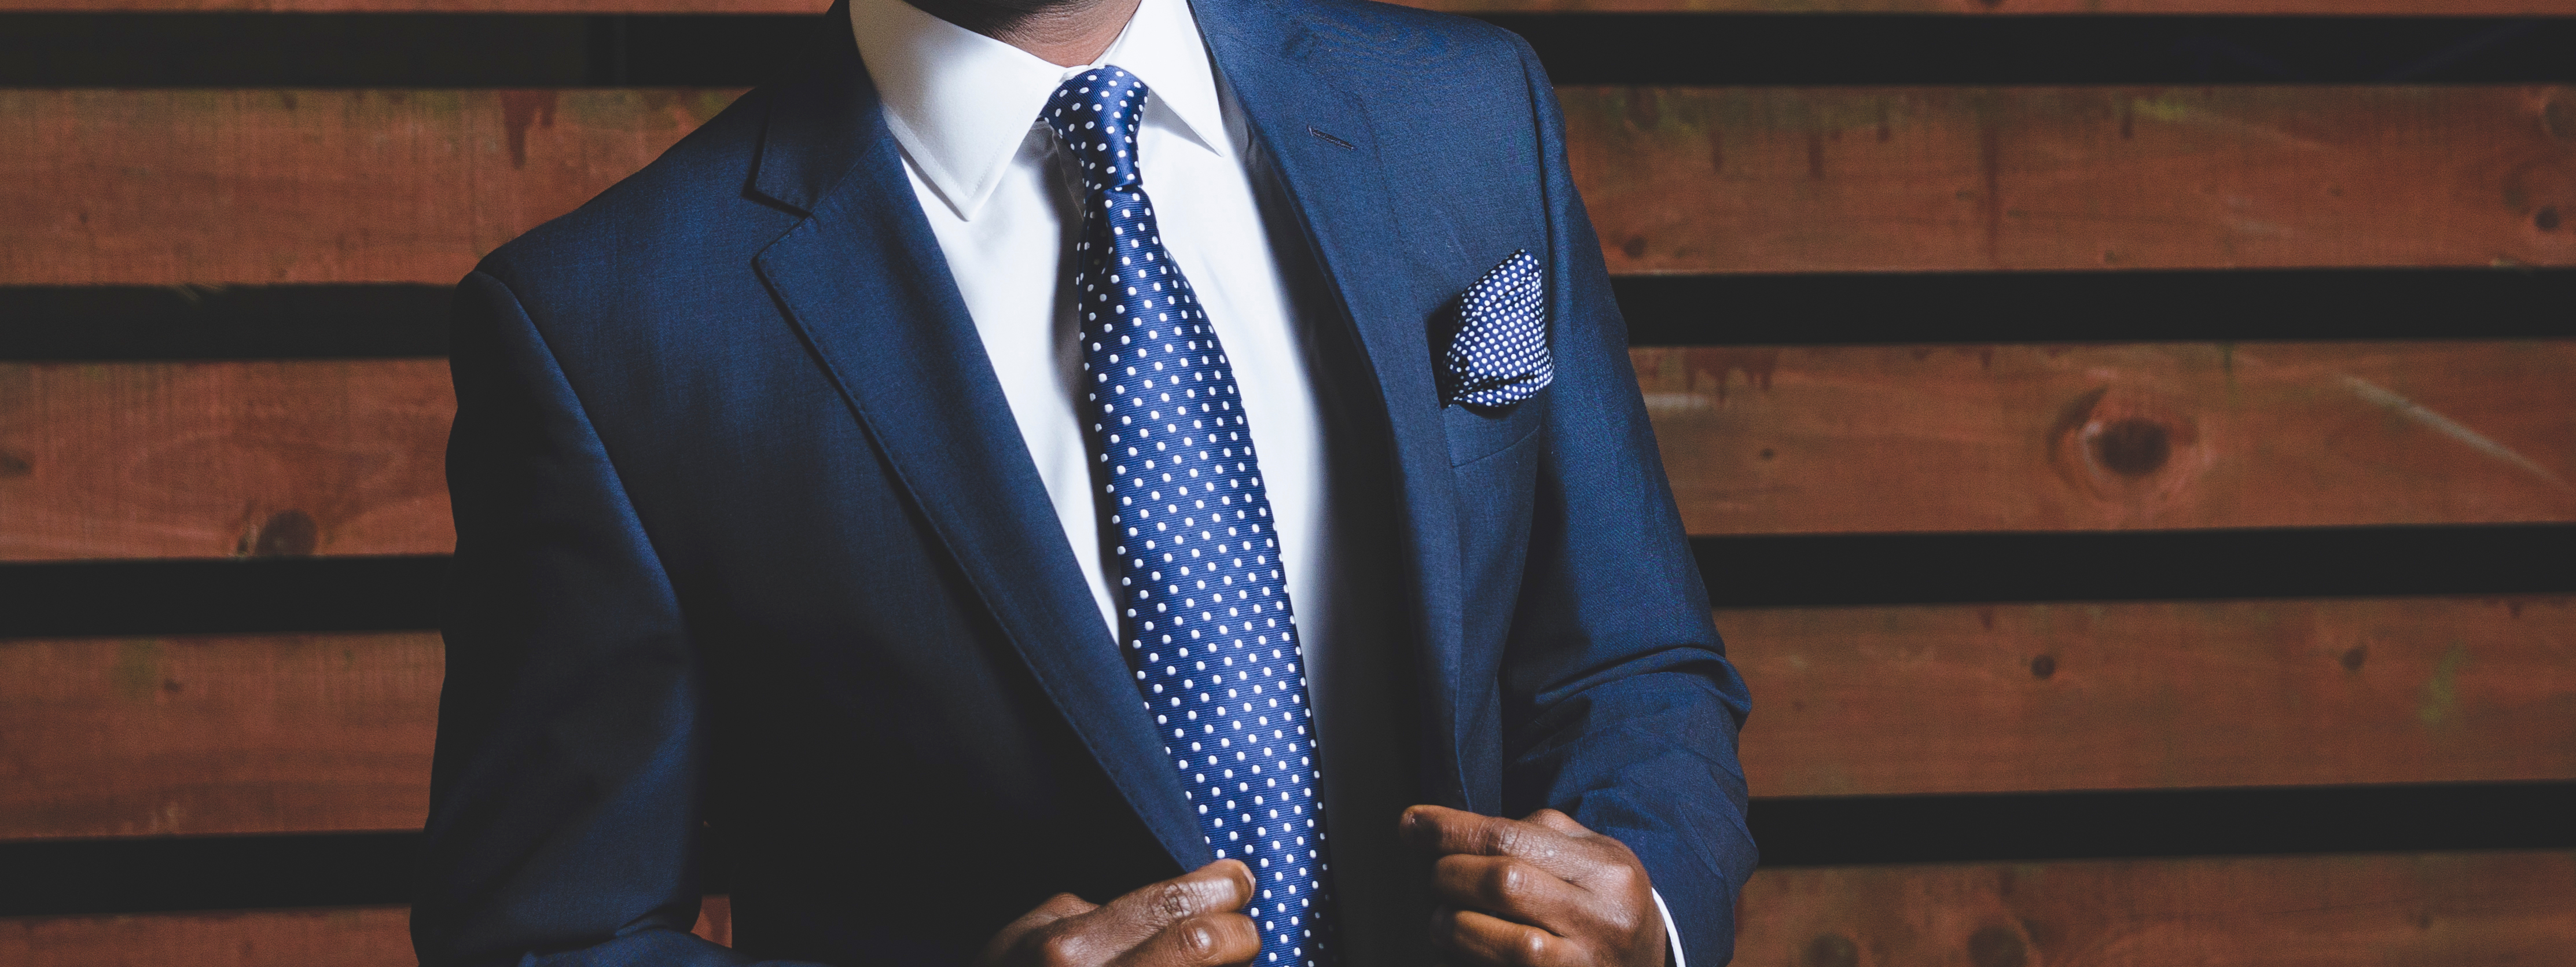 Be confident for job interviews